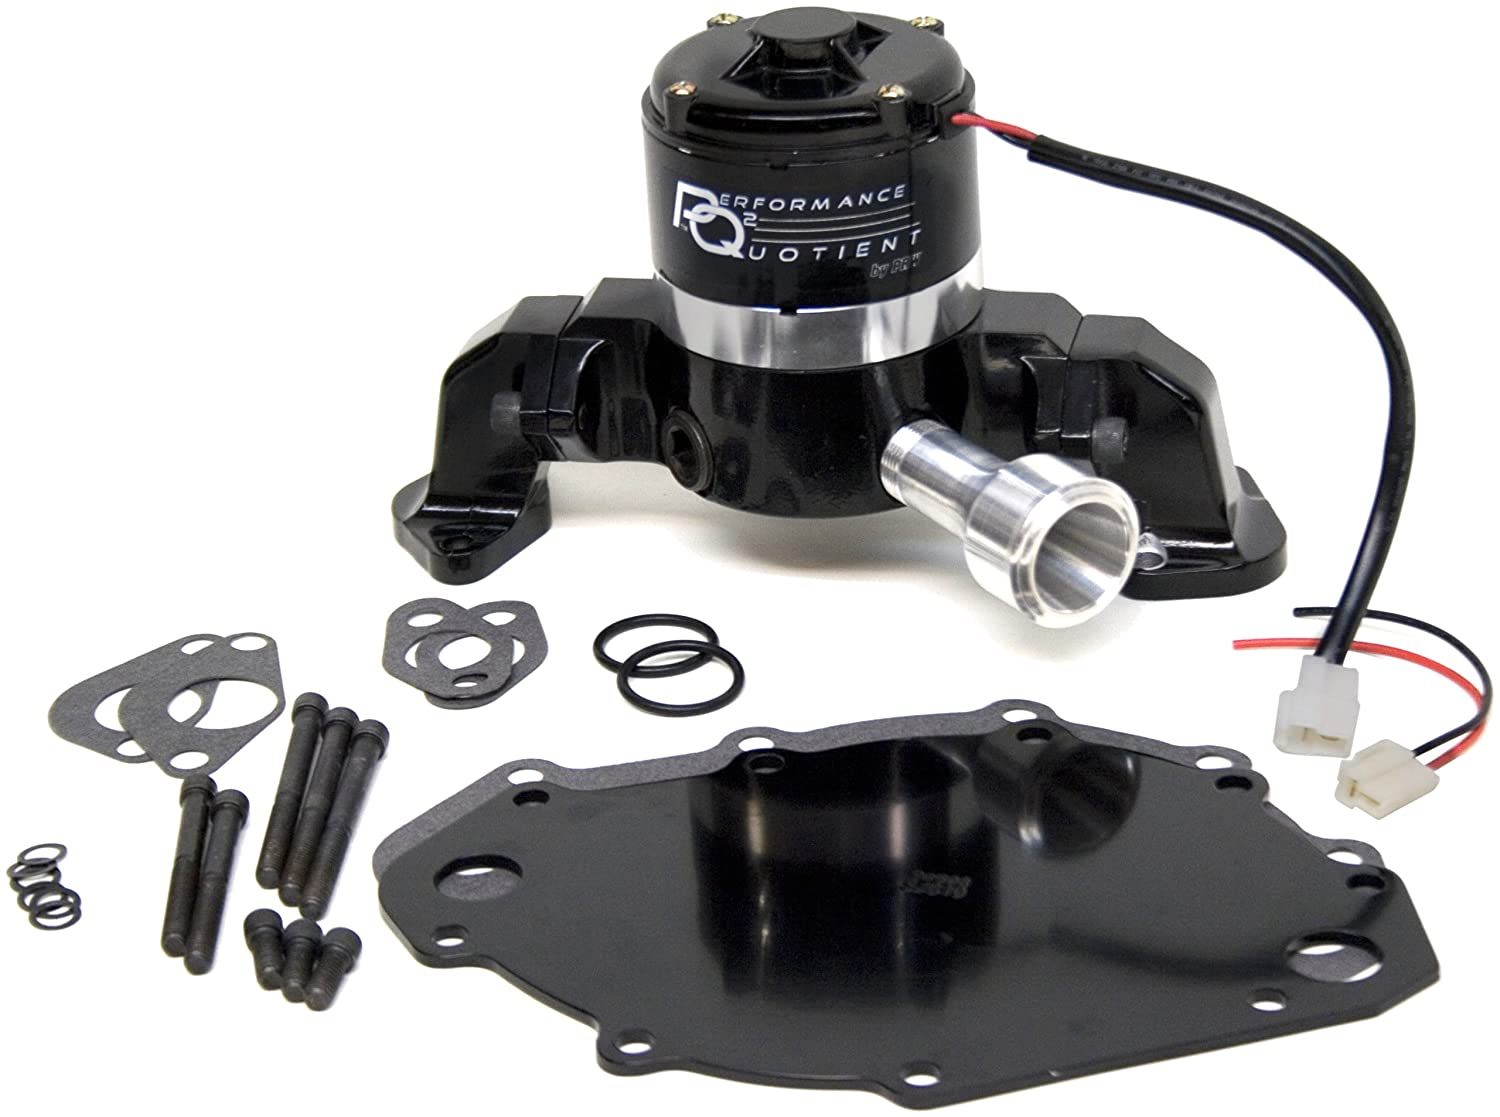 PRW 4446017 Black Powder-coated Performance Quotient Electric Racing Water Pump for Ford BB 400-460